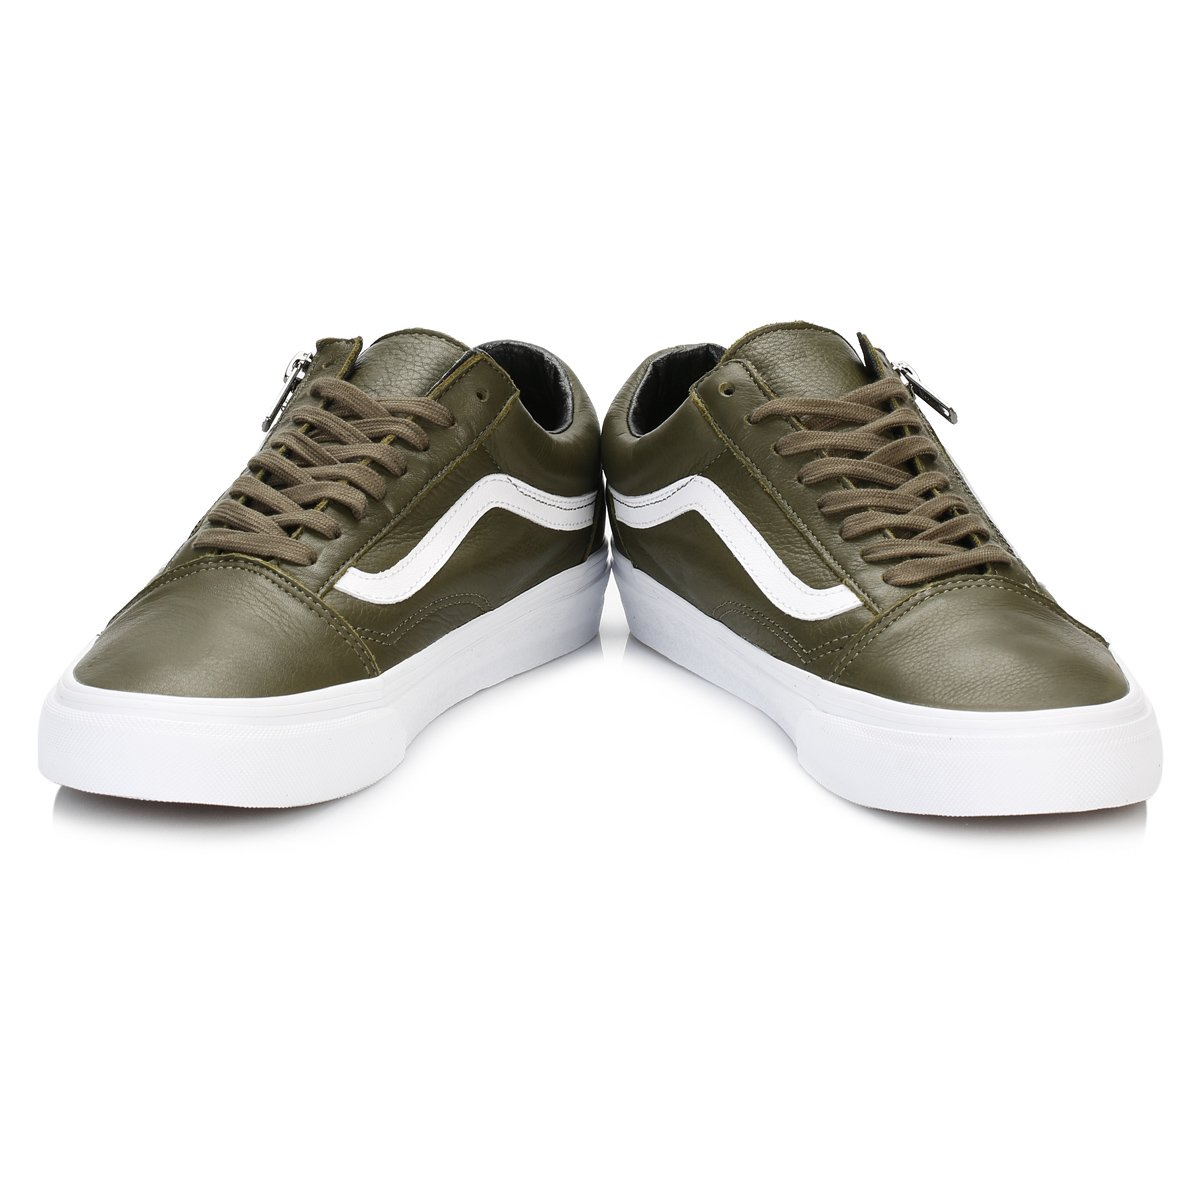 8ddf9304c7 Vans Mens Ivy Green True White Old Skool Zip Trainers  Amazon.co.uk  Shoes    Bags